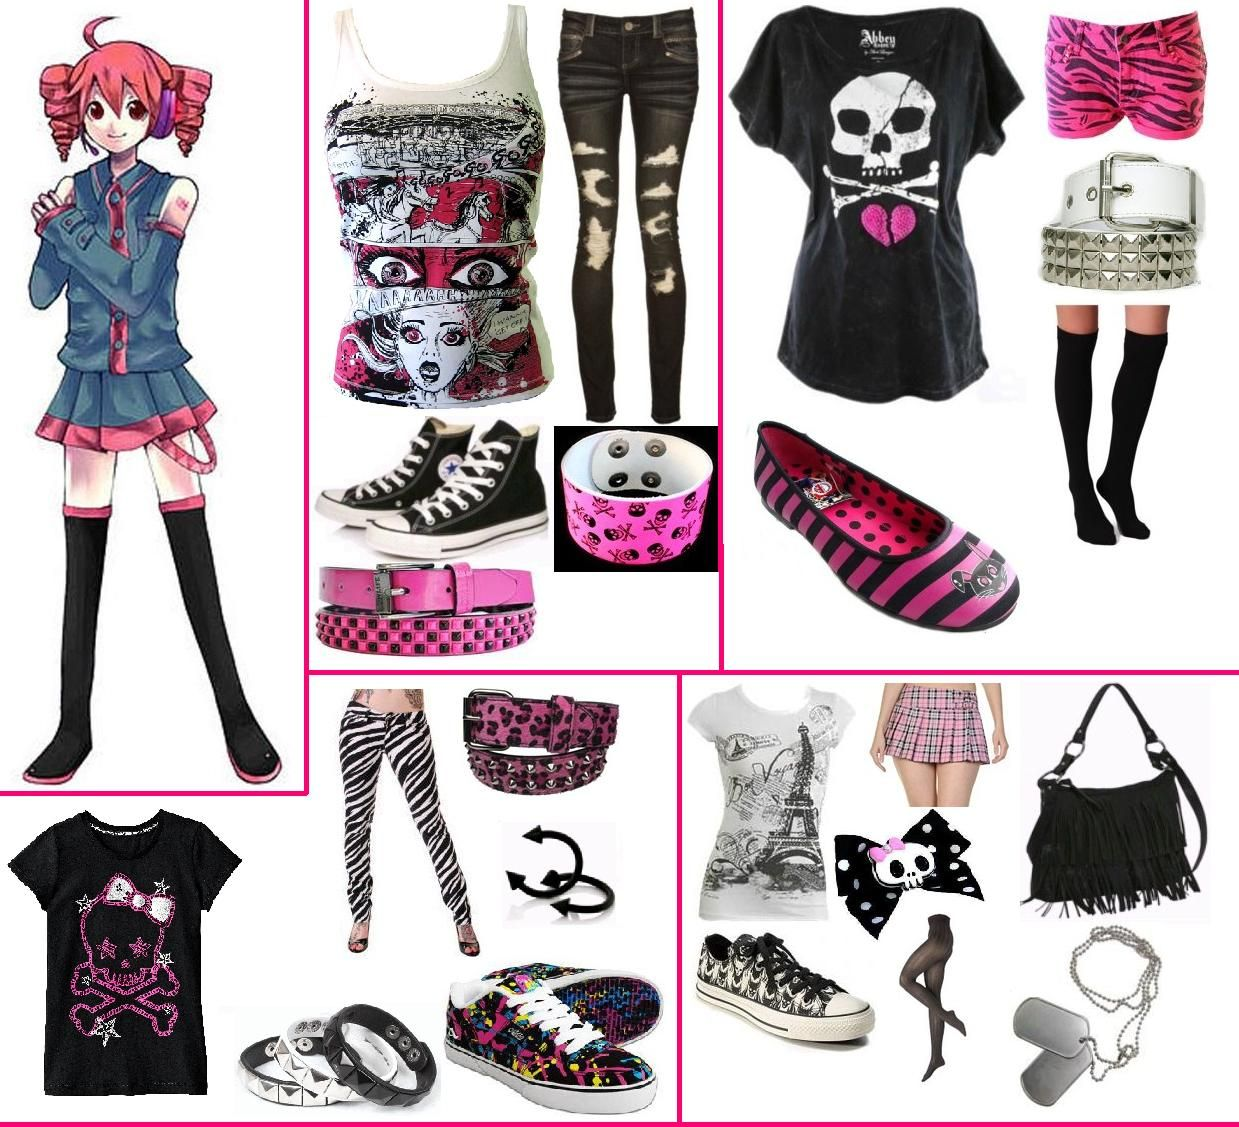 Kasane teto anime outfits cosplay outfits character